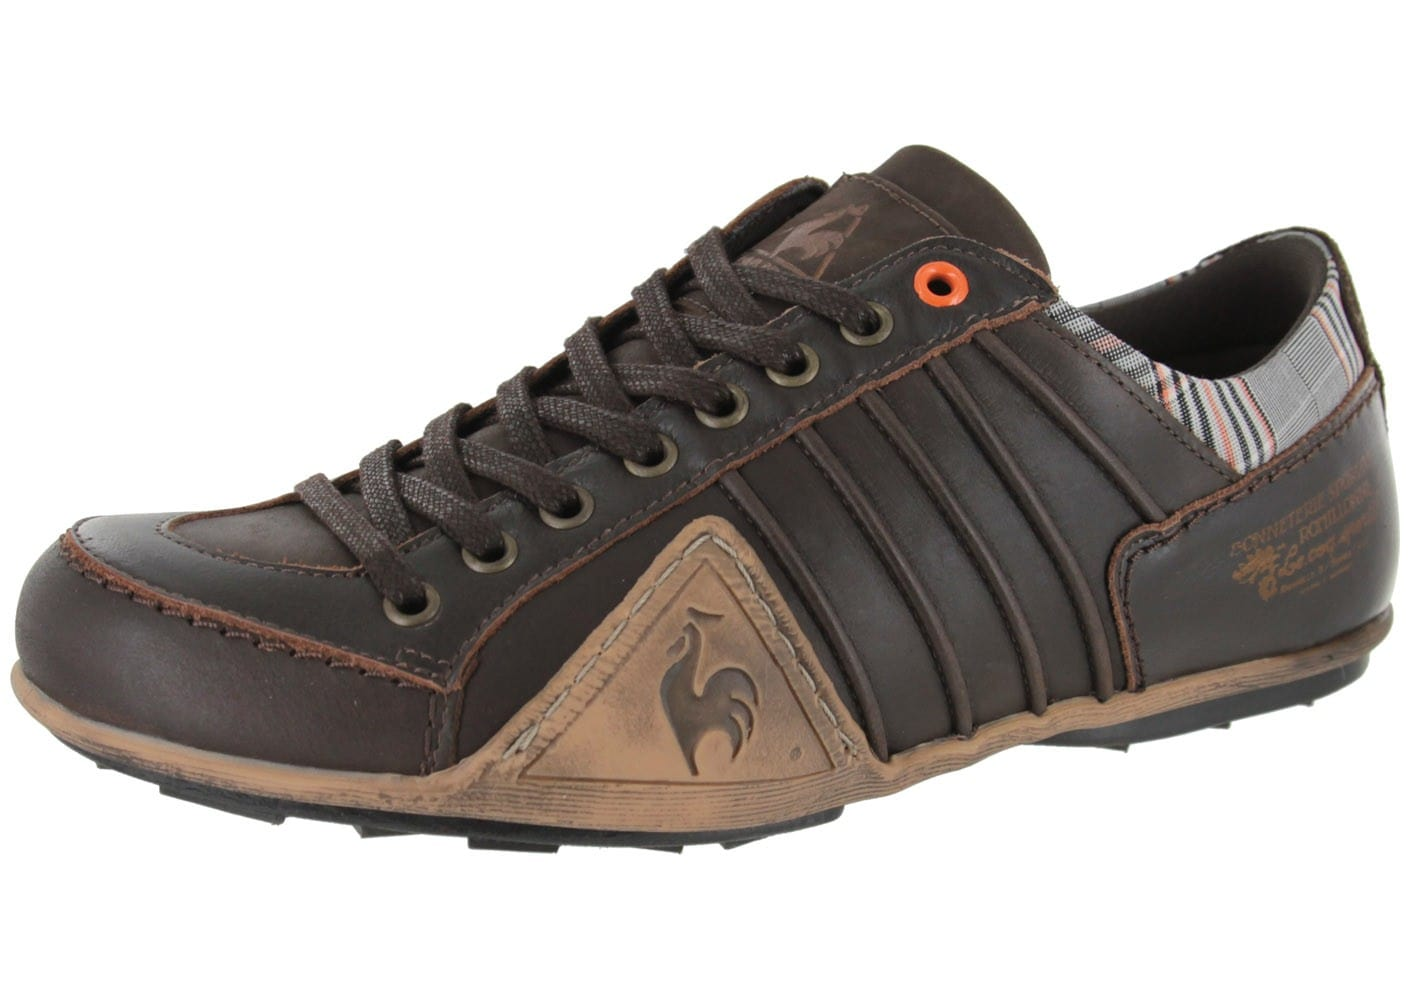 le coq sportif buffalo cuir reglisse chaussures homme chausport. Black Bedroom Furniture Sets. Home Design Ideas